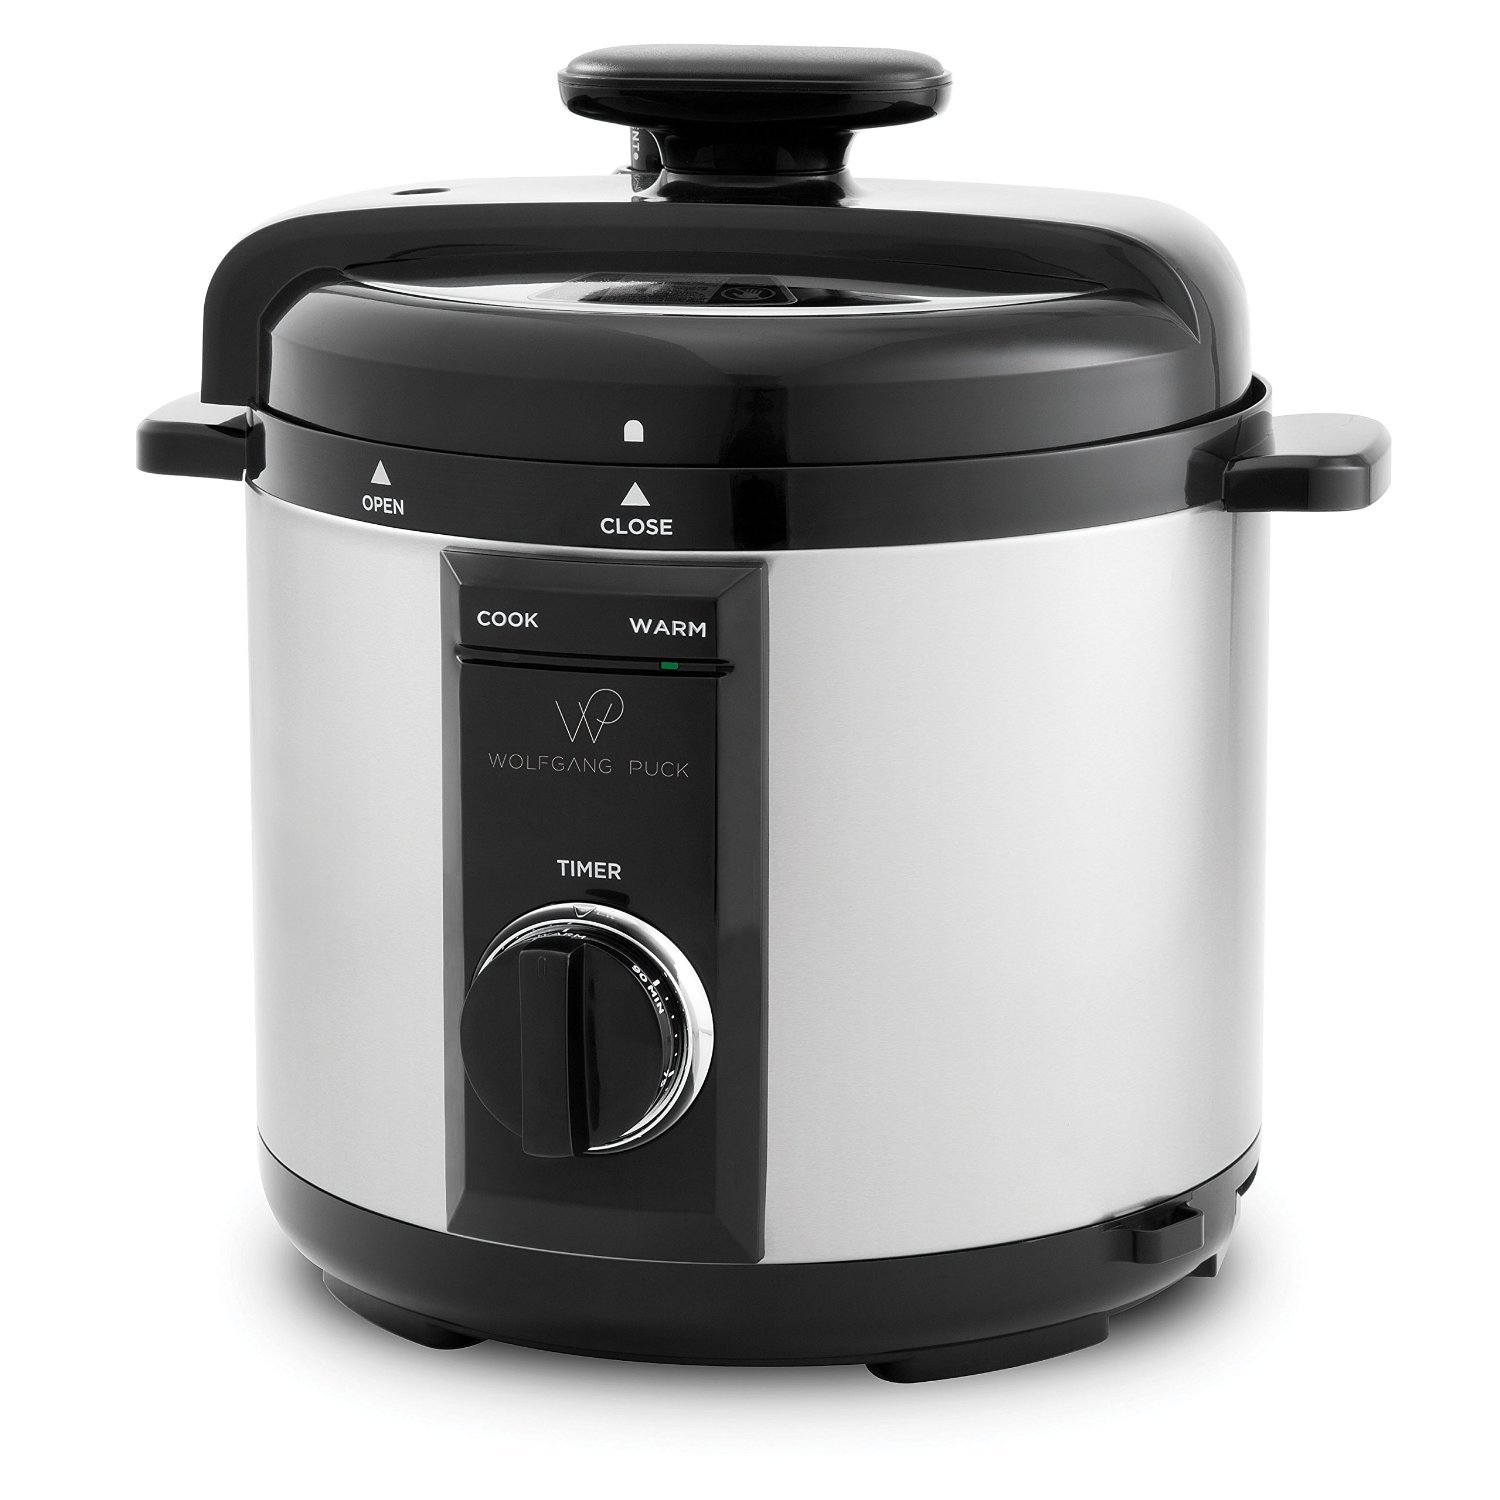 Wolfgang Puck Automatic Pressure Cooker with Removable 8 Quart Pot, 1200-Watt Cook and Sear